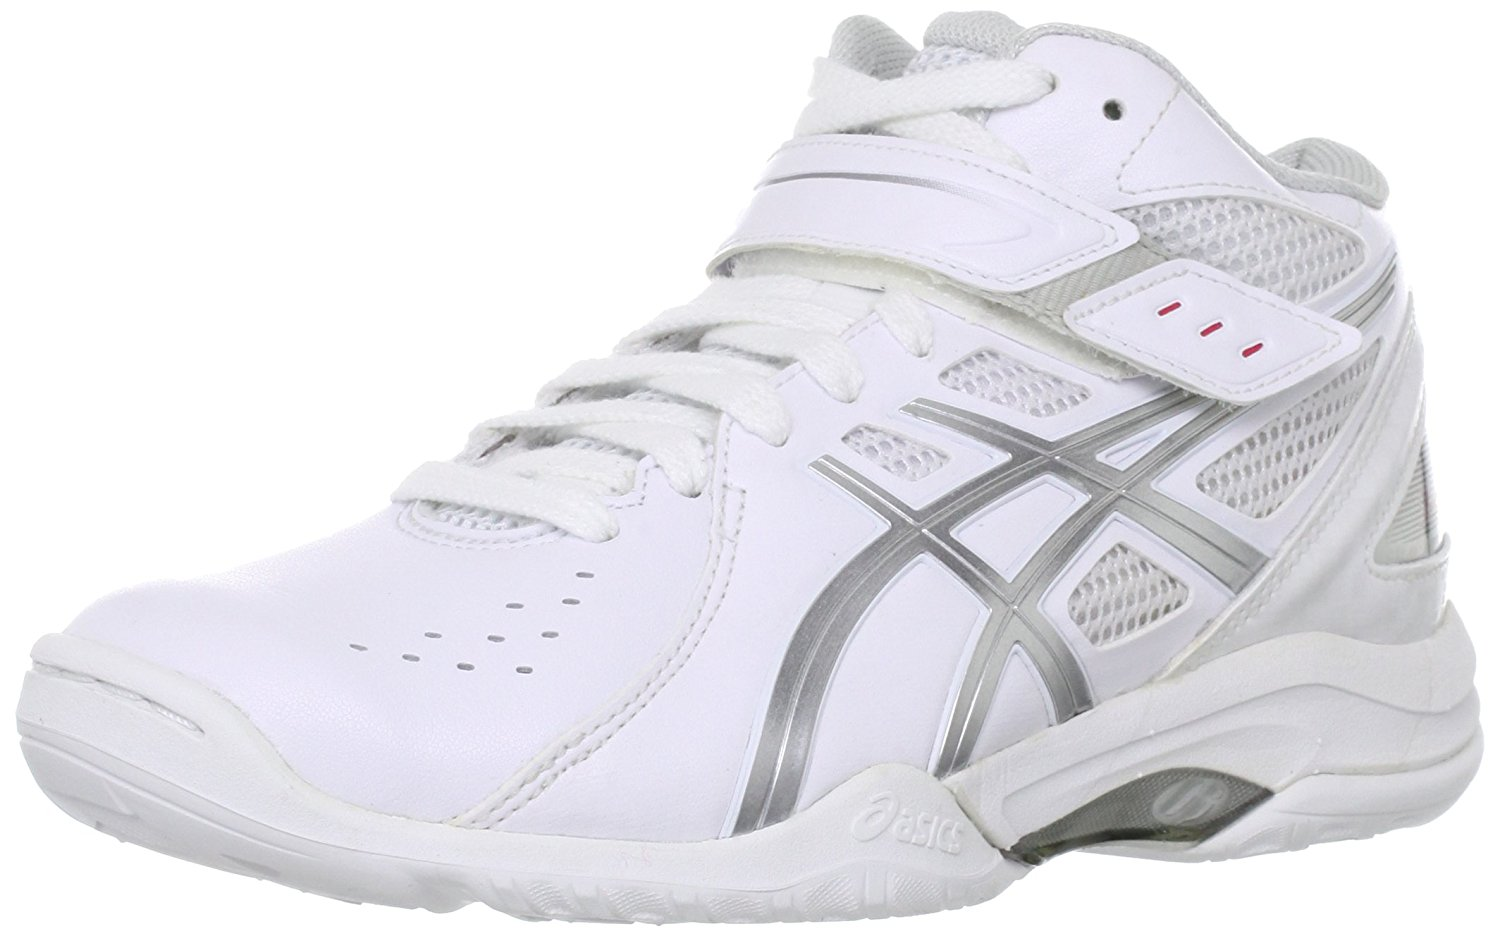 726c12abac412 Get Quotations · Asics Men s Gelfairy 6 Artificial Leather Basketball Shoes